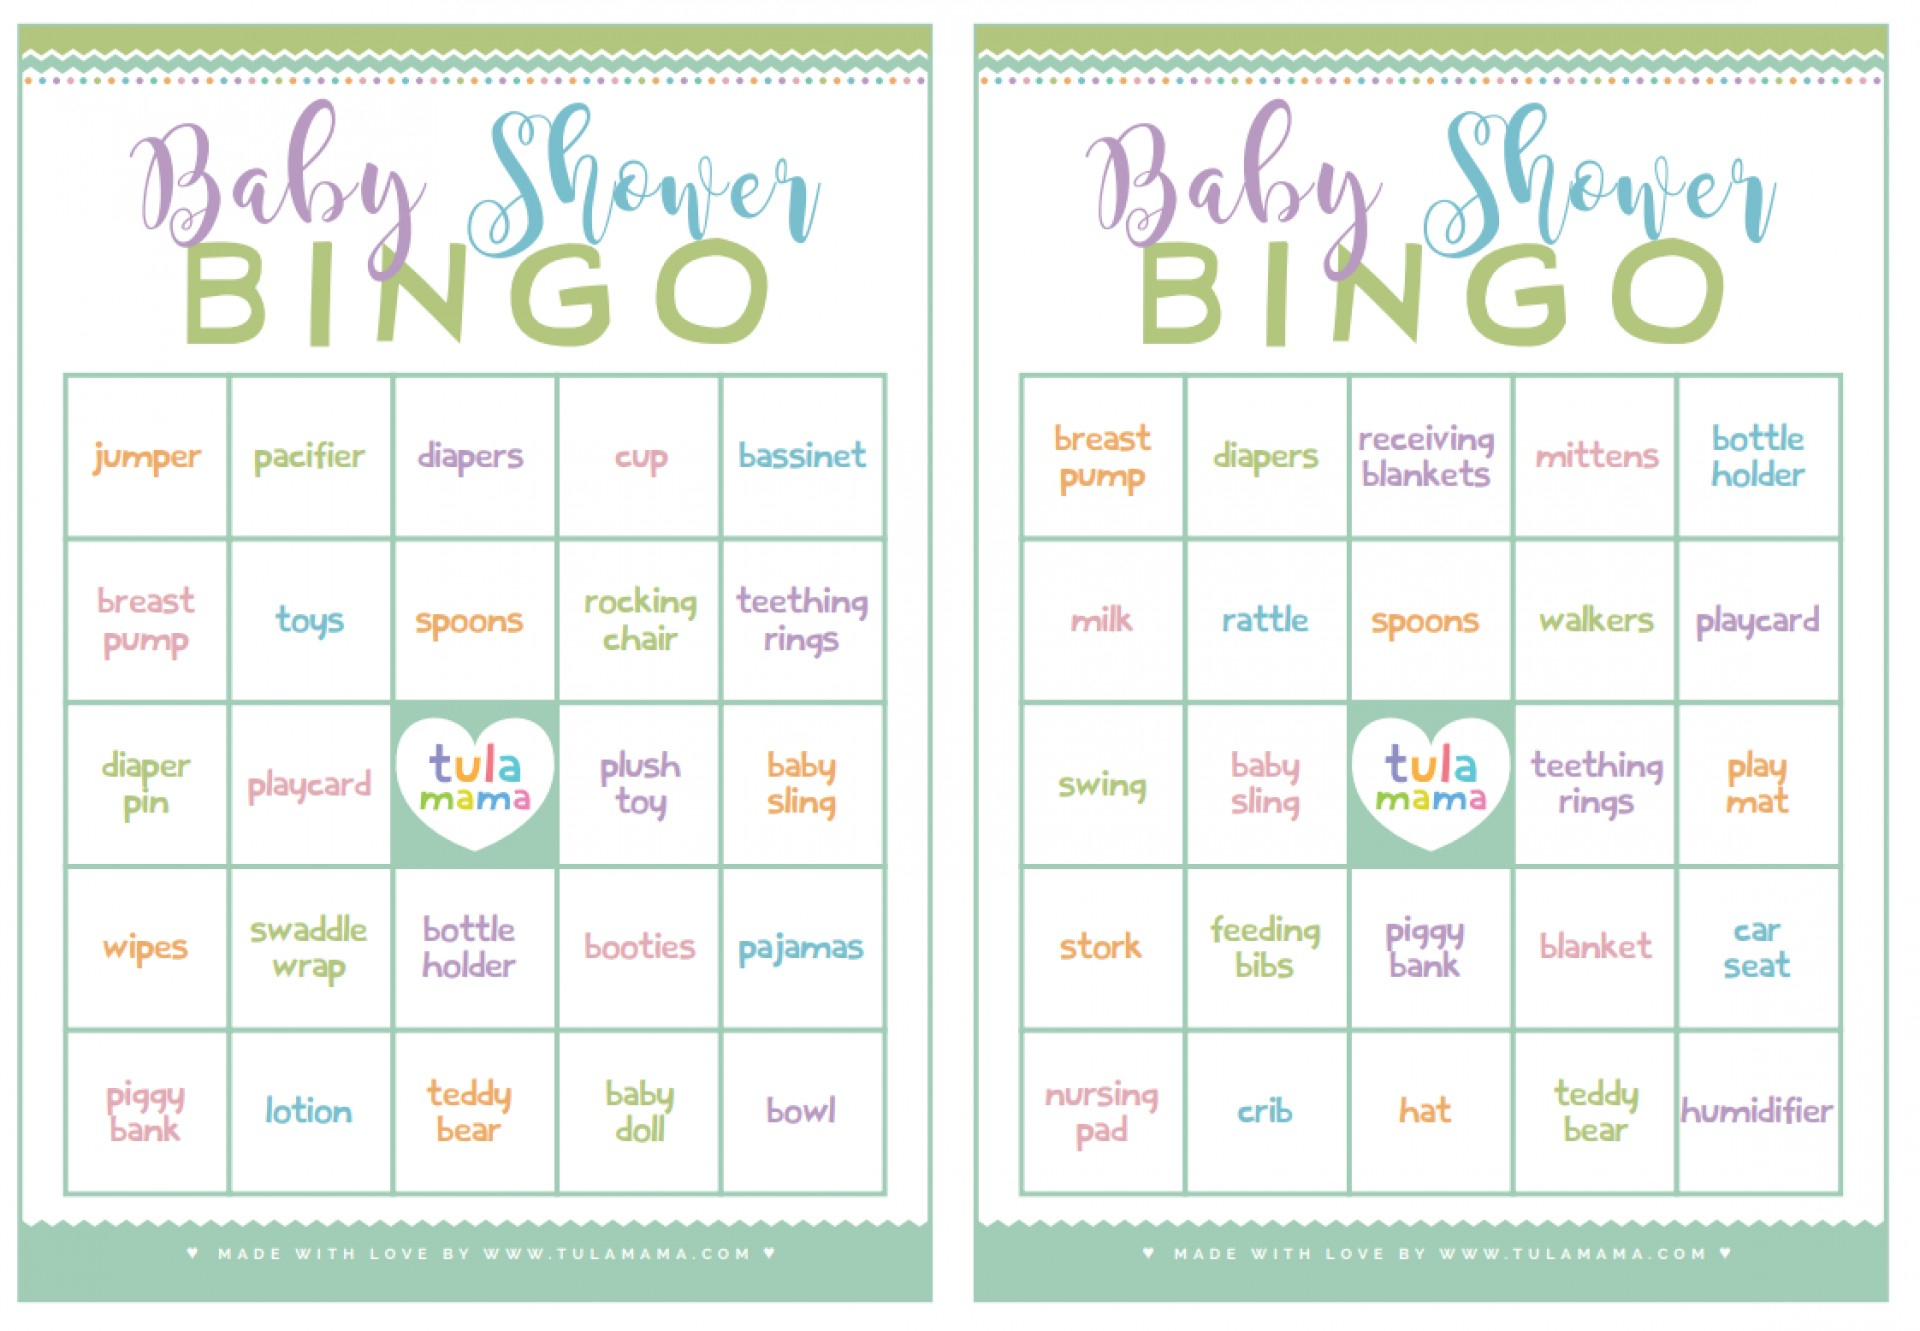 009 Free Dowload Baby Shower Bingo Template Wondrous Ideas Cards - Printable Baby Shower Bingo Games Free